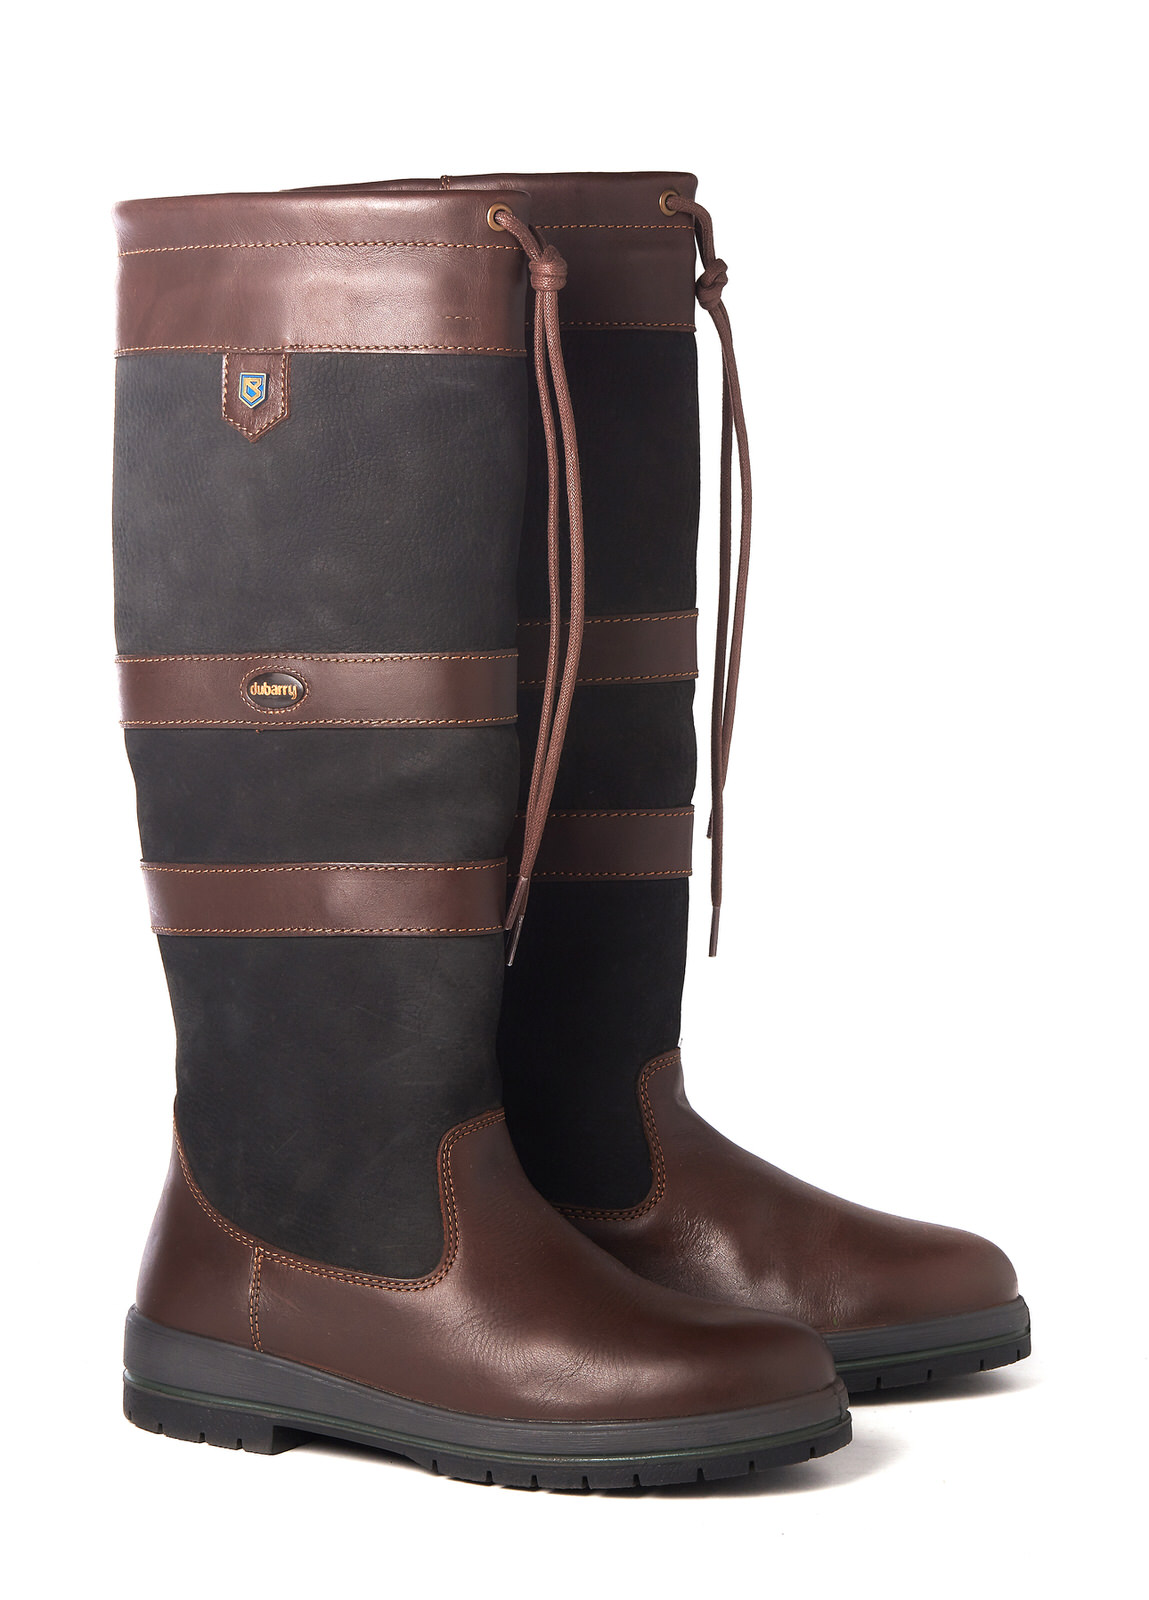 Galway_SlimFit?_Country_Boot_Black/Brown_Image_1